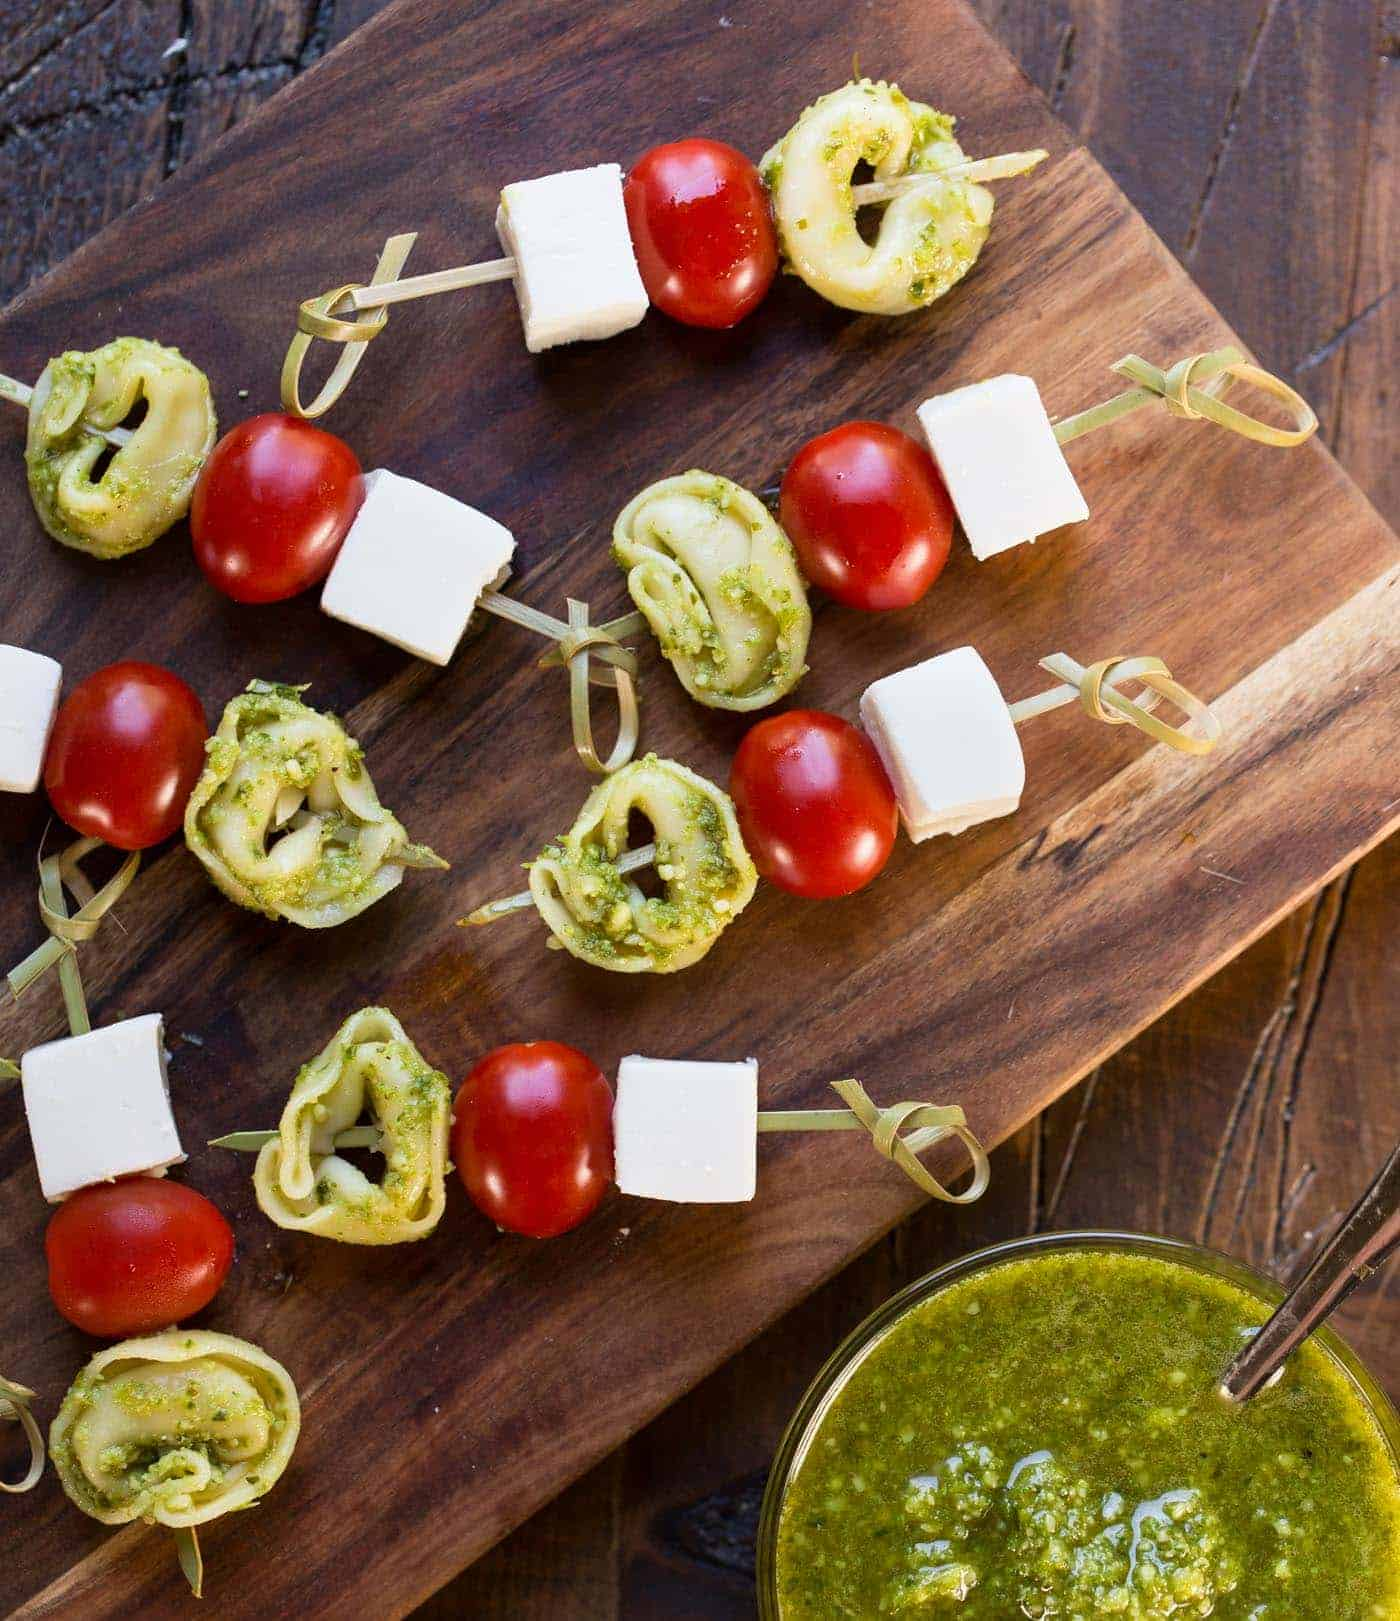 Caprese skewers on wooden cutting board with pesto.